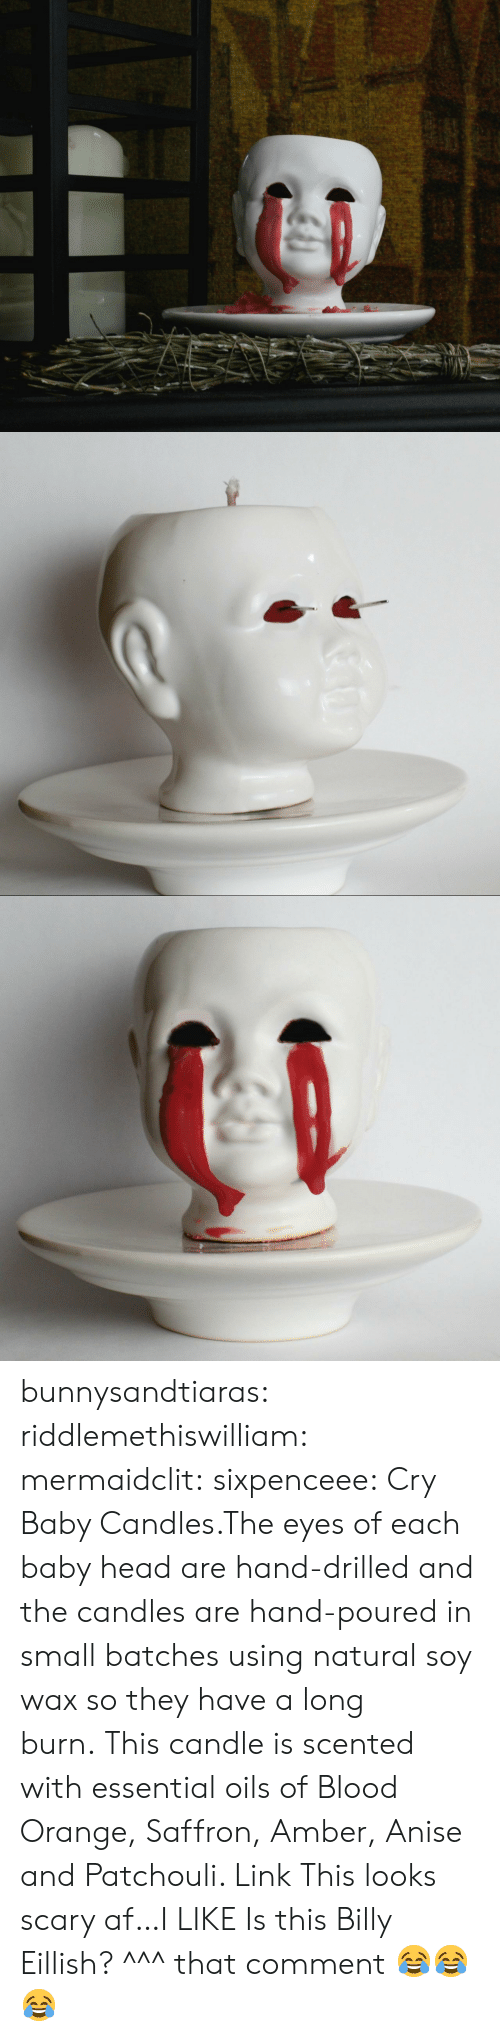 Af, Click, and Creepy: bunnysandtiaras:  riddlemethiswilliam: mermaidclit:  sixpenceee:  Cry Baby Candles.The eyes of each baby head are hand-drilled and the candles are hand-poured in small batches using natural soy wax so they have a long burn.This candle is scented with essential oils of Blood Orange, Saffron, Amber, Anise and Patchouli. Link  This looks scary af…I LIKE  Is this Billy Eillish?   ^^^ that comment 😂😂😂